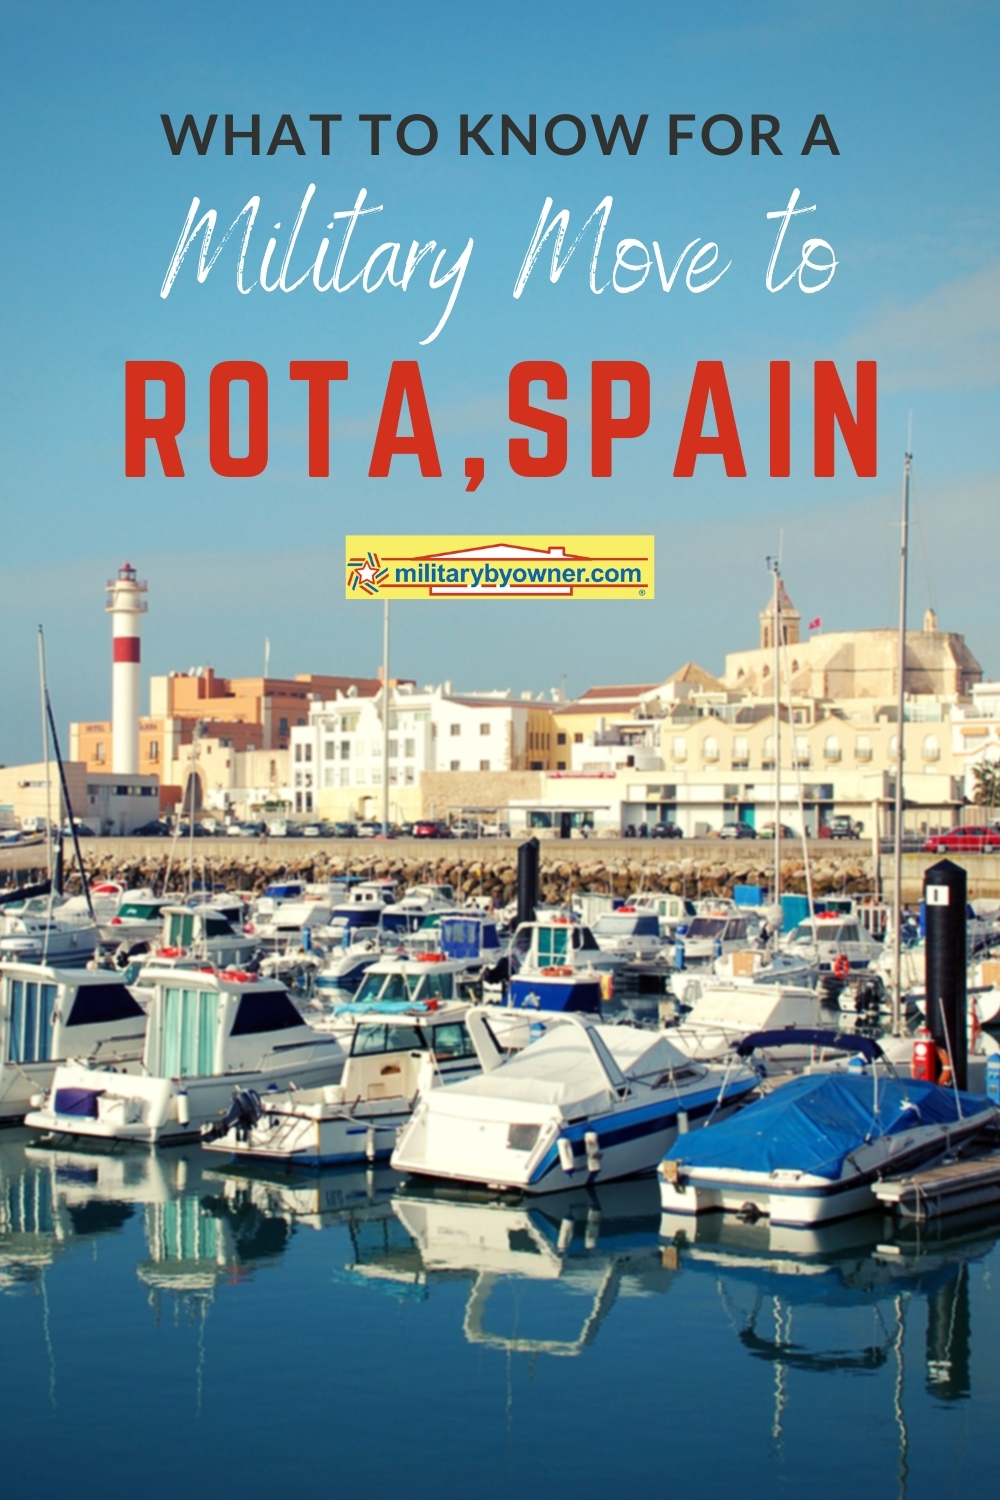 What to Know for a Military Move to Rota, Spain